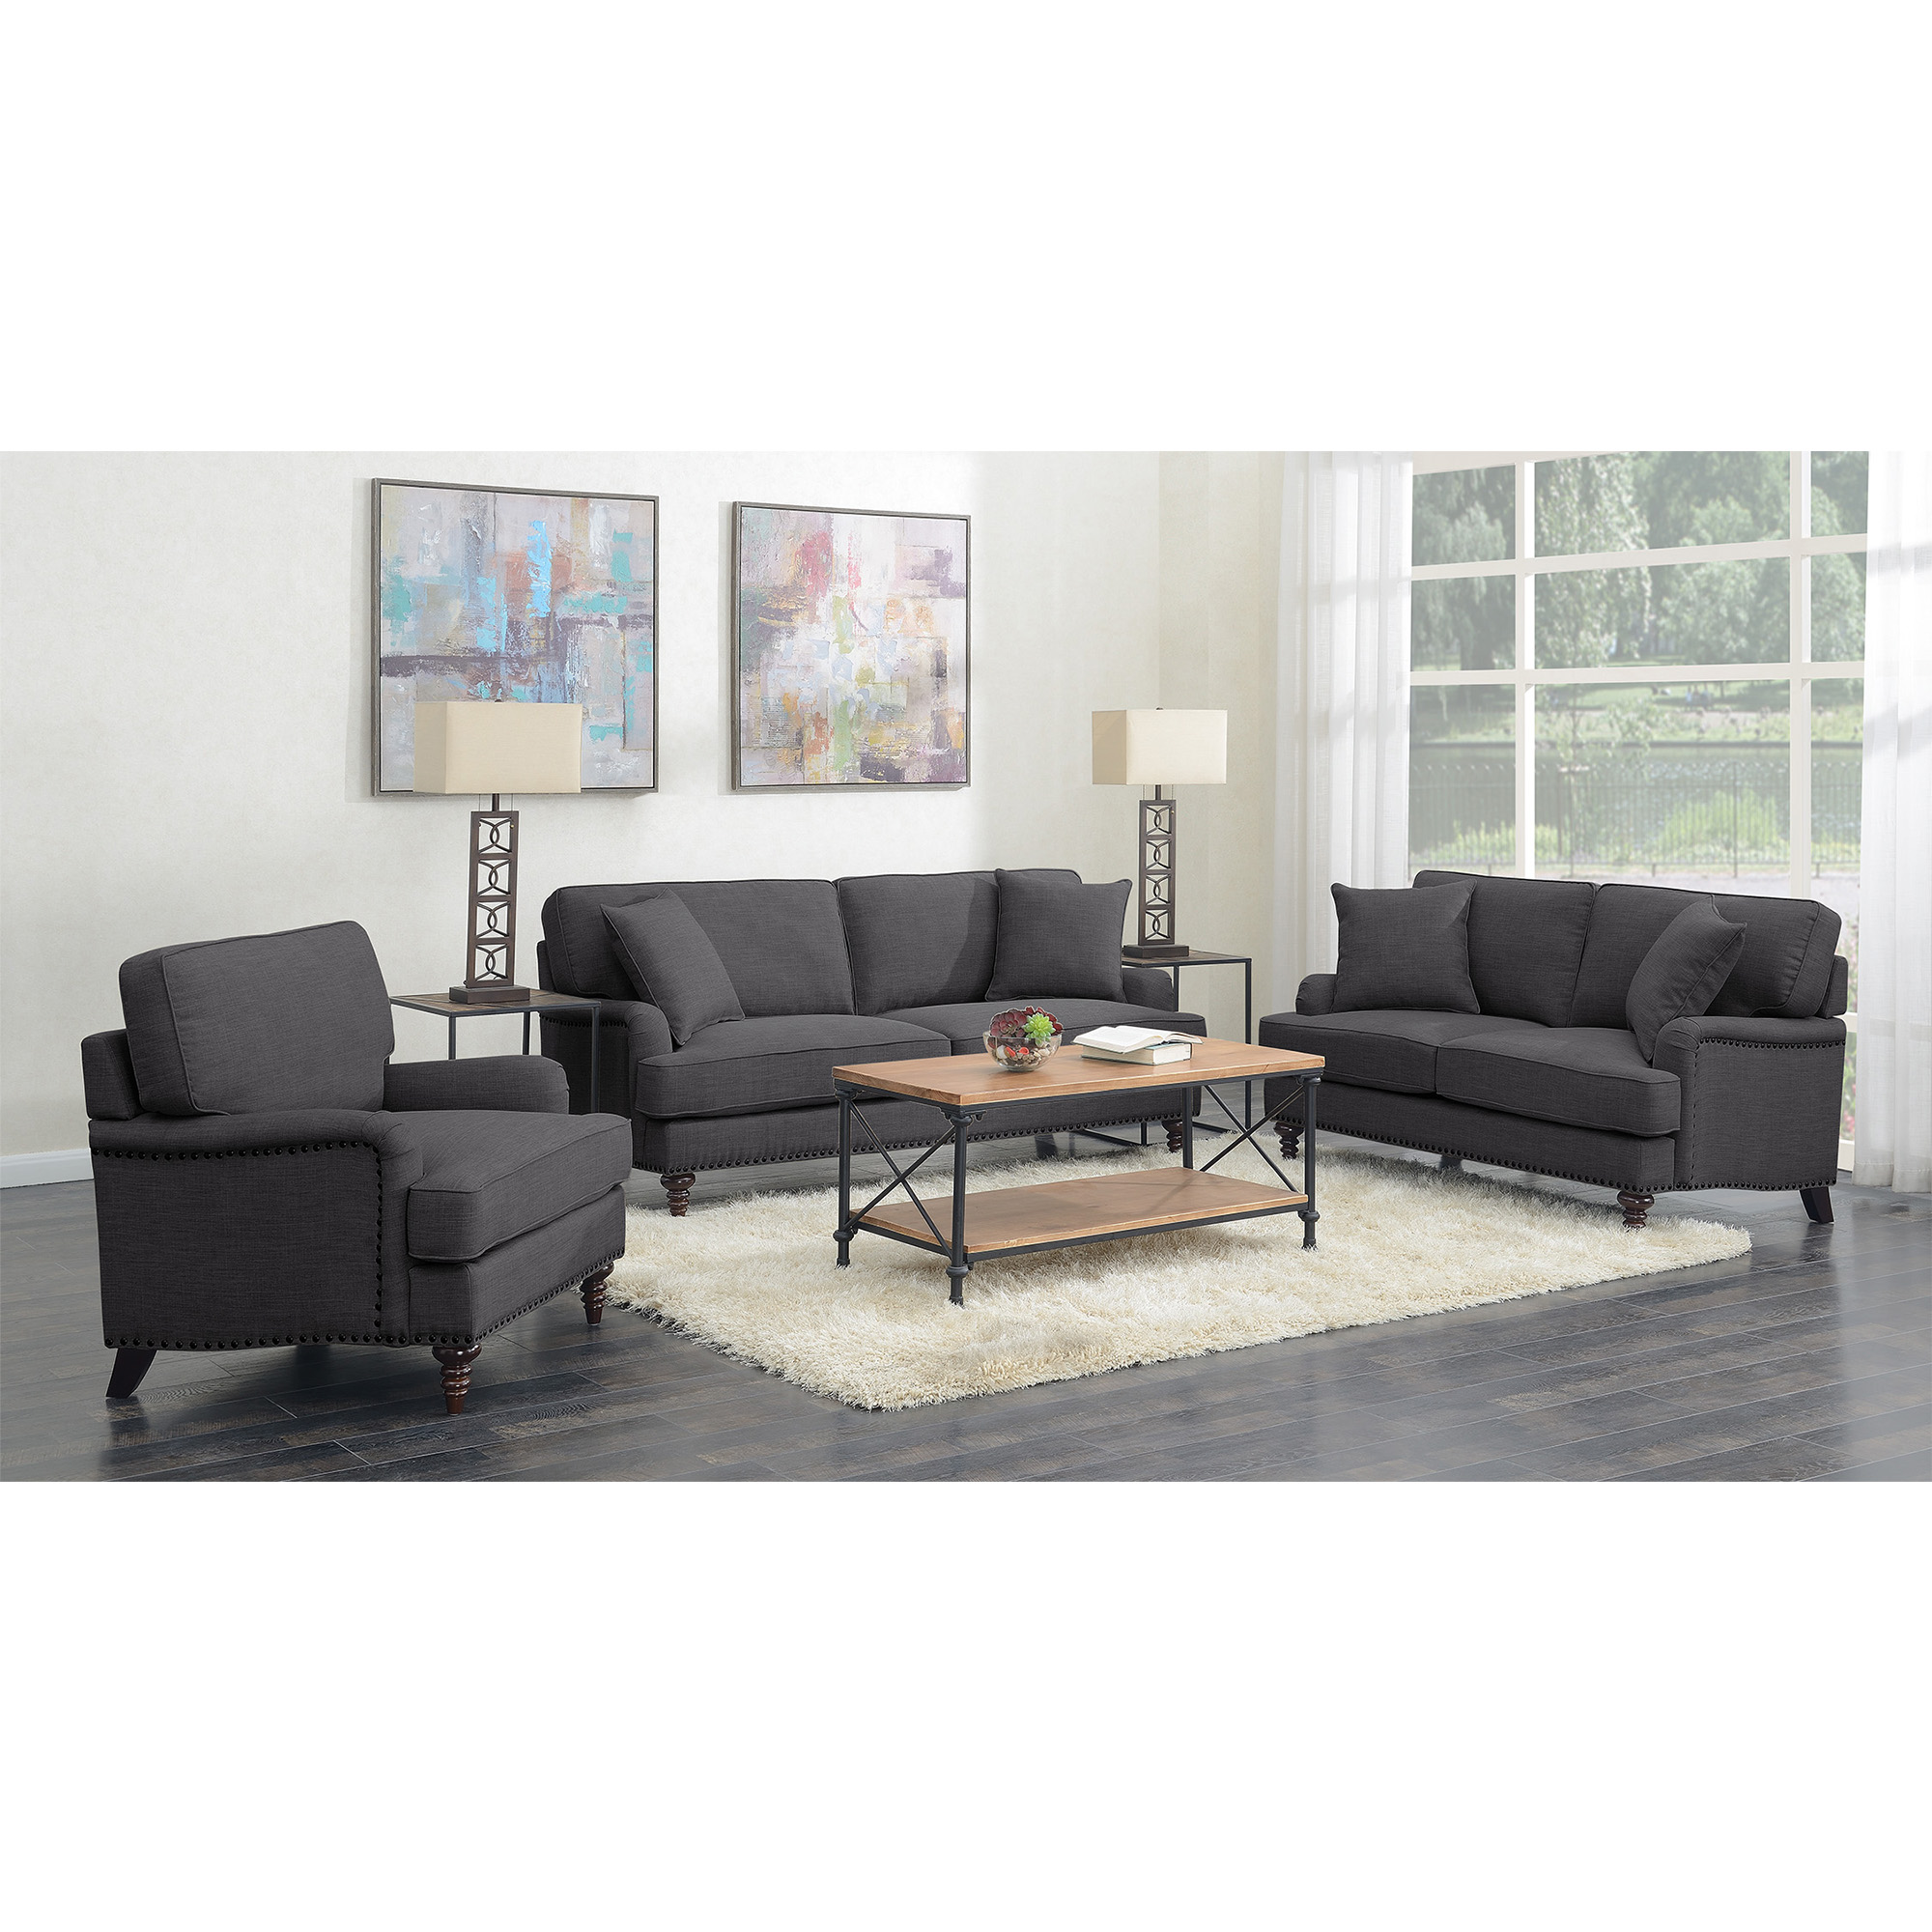 Picket House Living Room Set Sofa Loveseat Chair